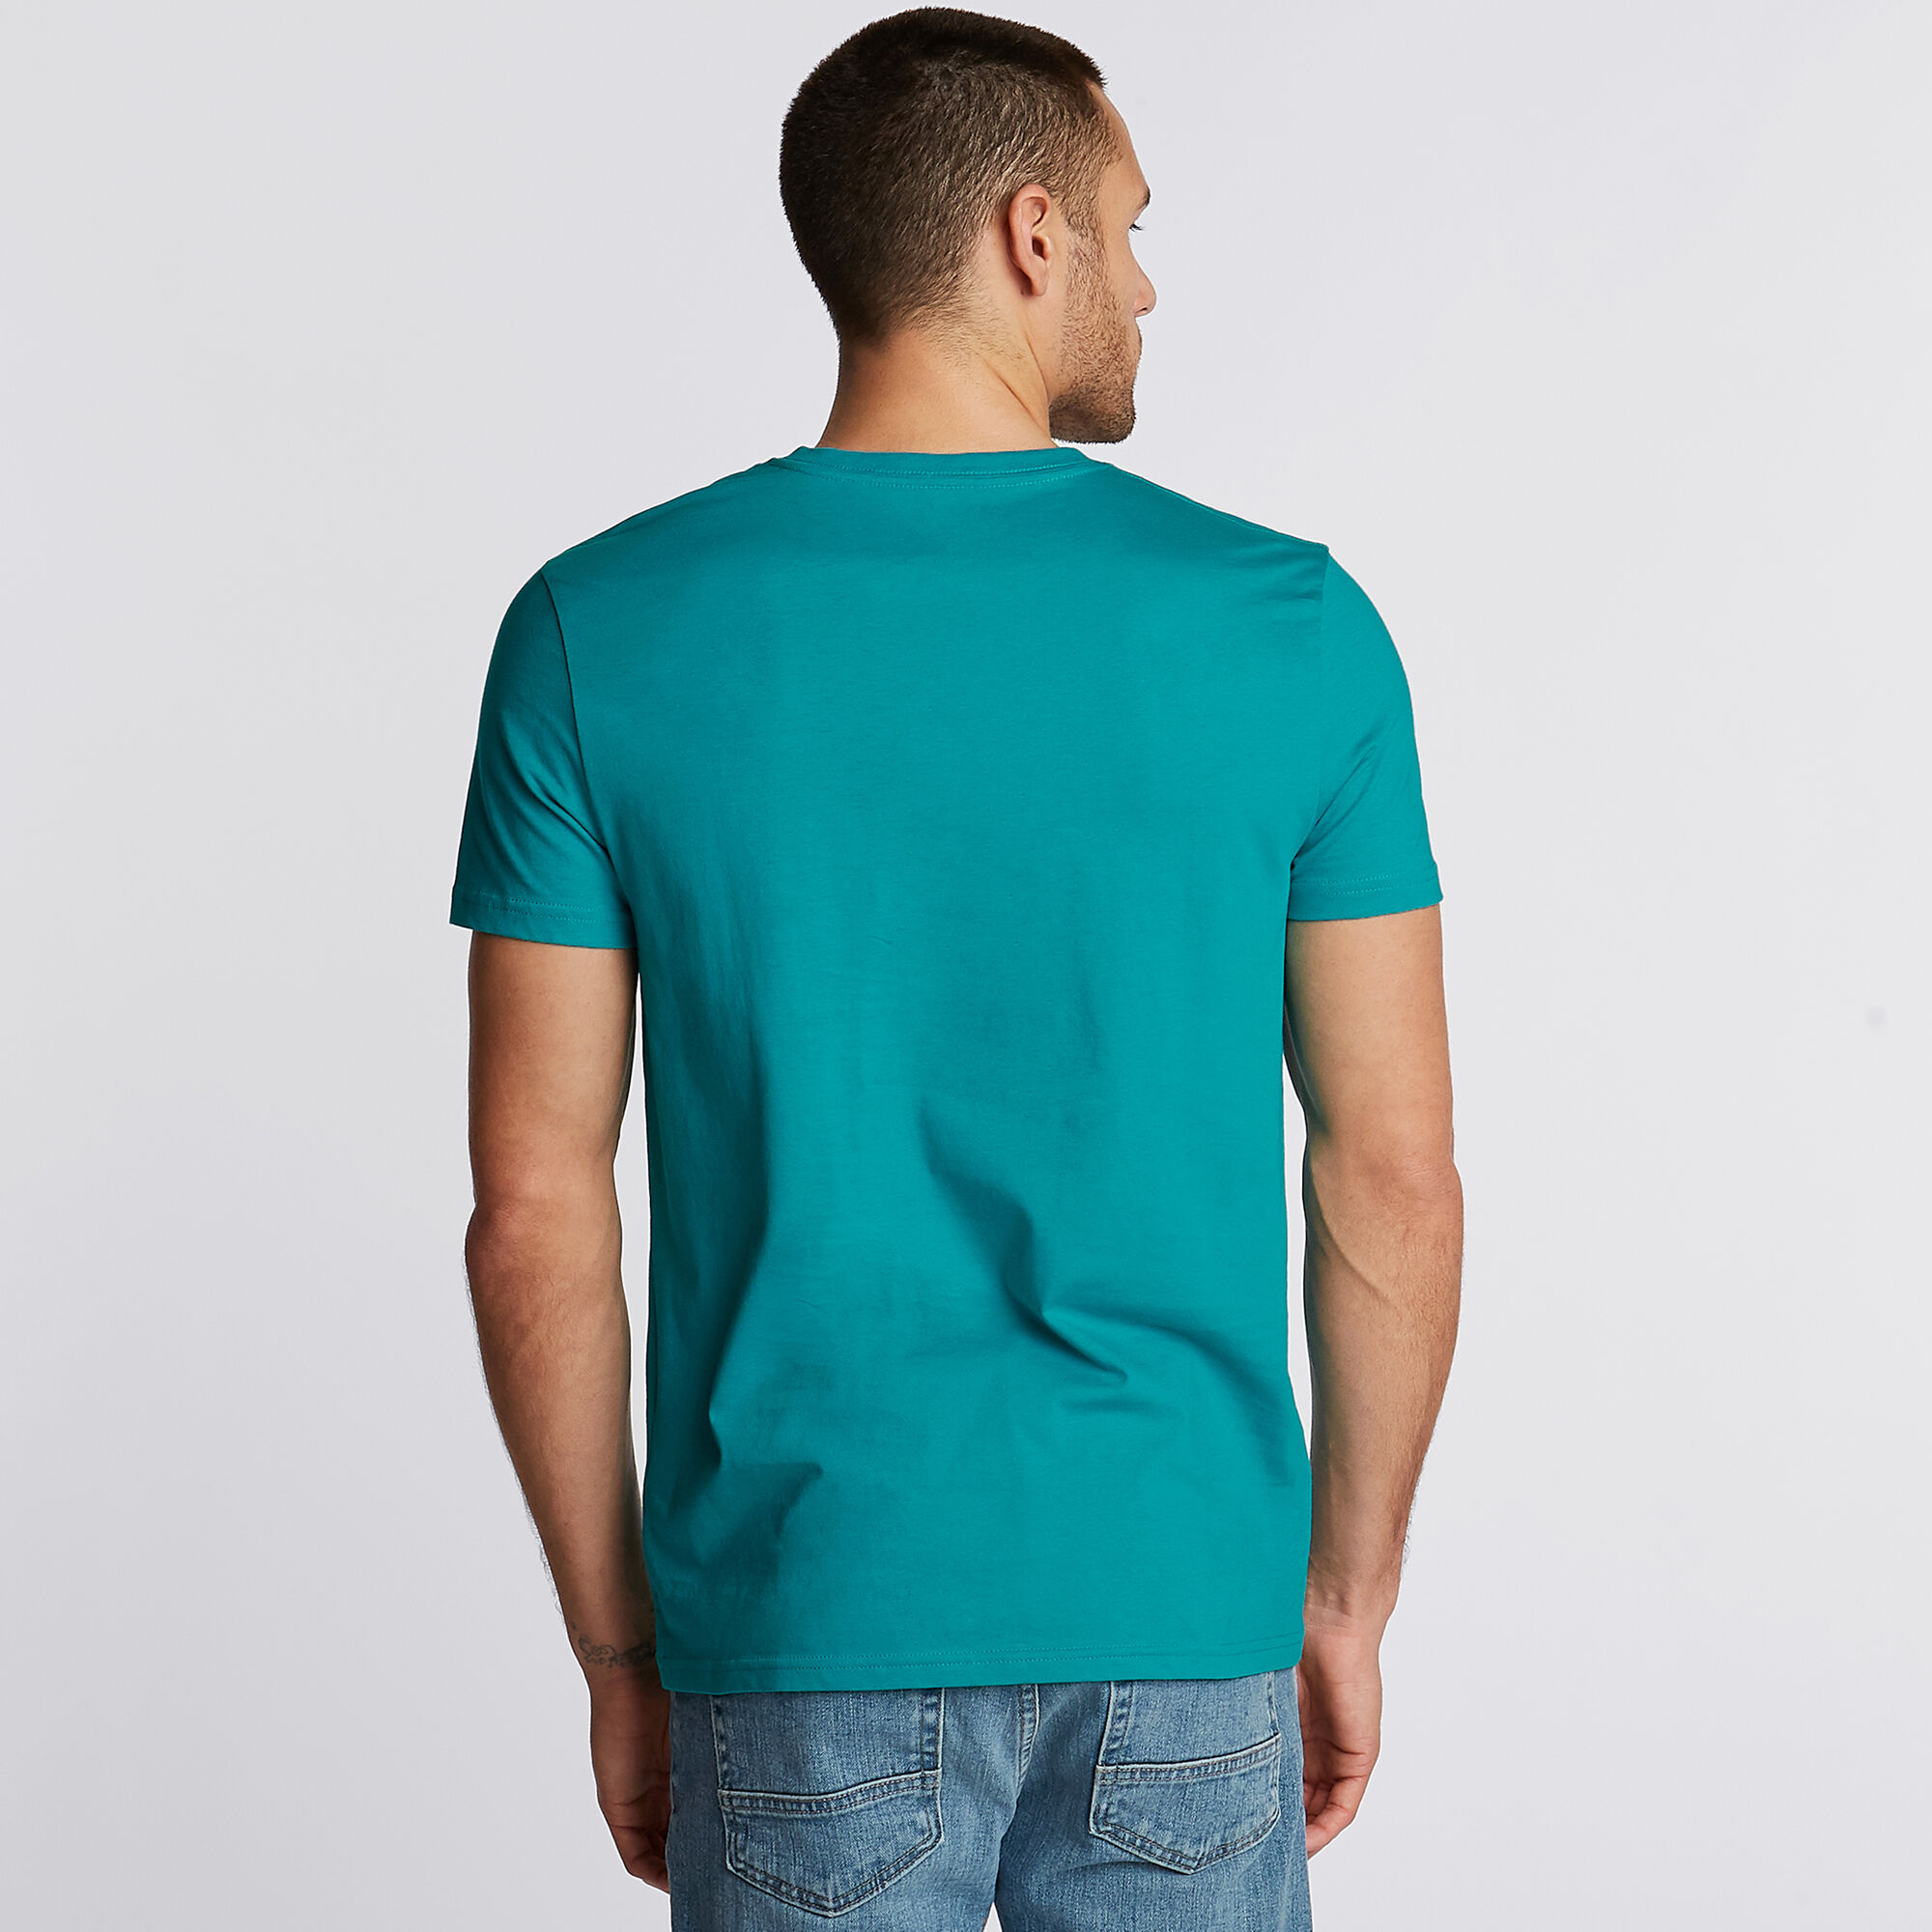 Nautica-Mens-V-Neck-Short-Sleeve-T-Shirt thumbnail 24